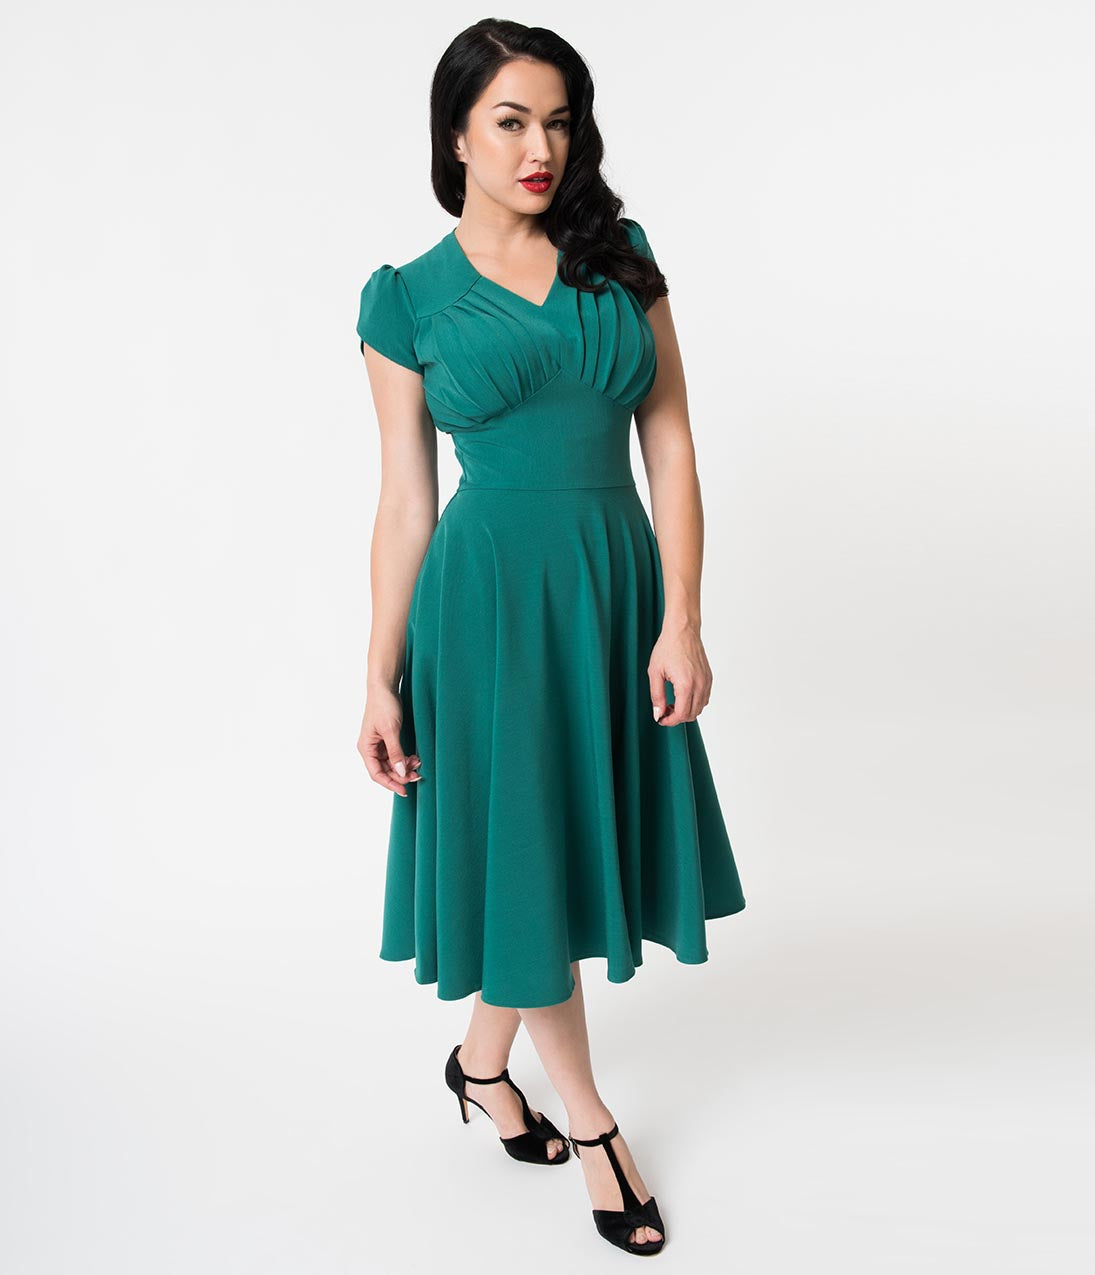 1940s Dresses | 40s Dress, Swing Dress Retro Style Emerald Green Petal Sleeve Pleated Swing Dress $74.00 AT vintagedancer.com